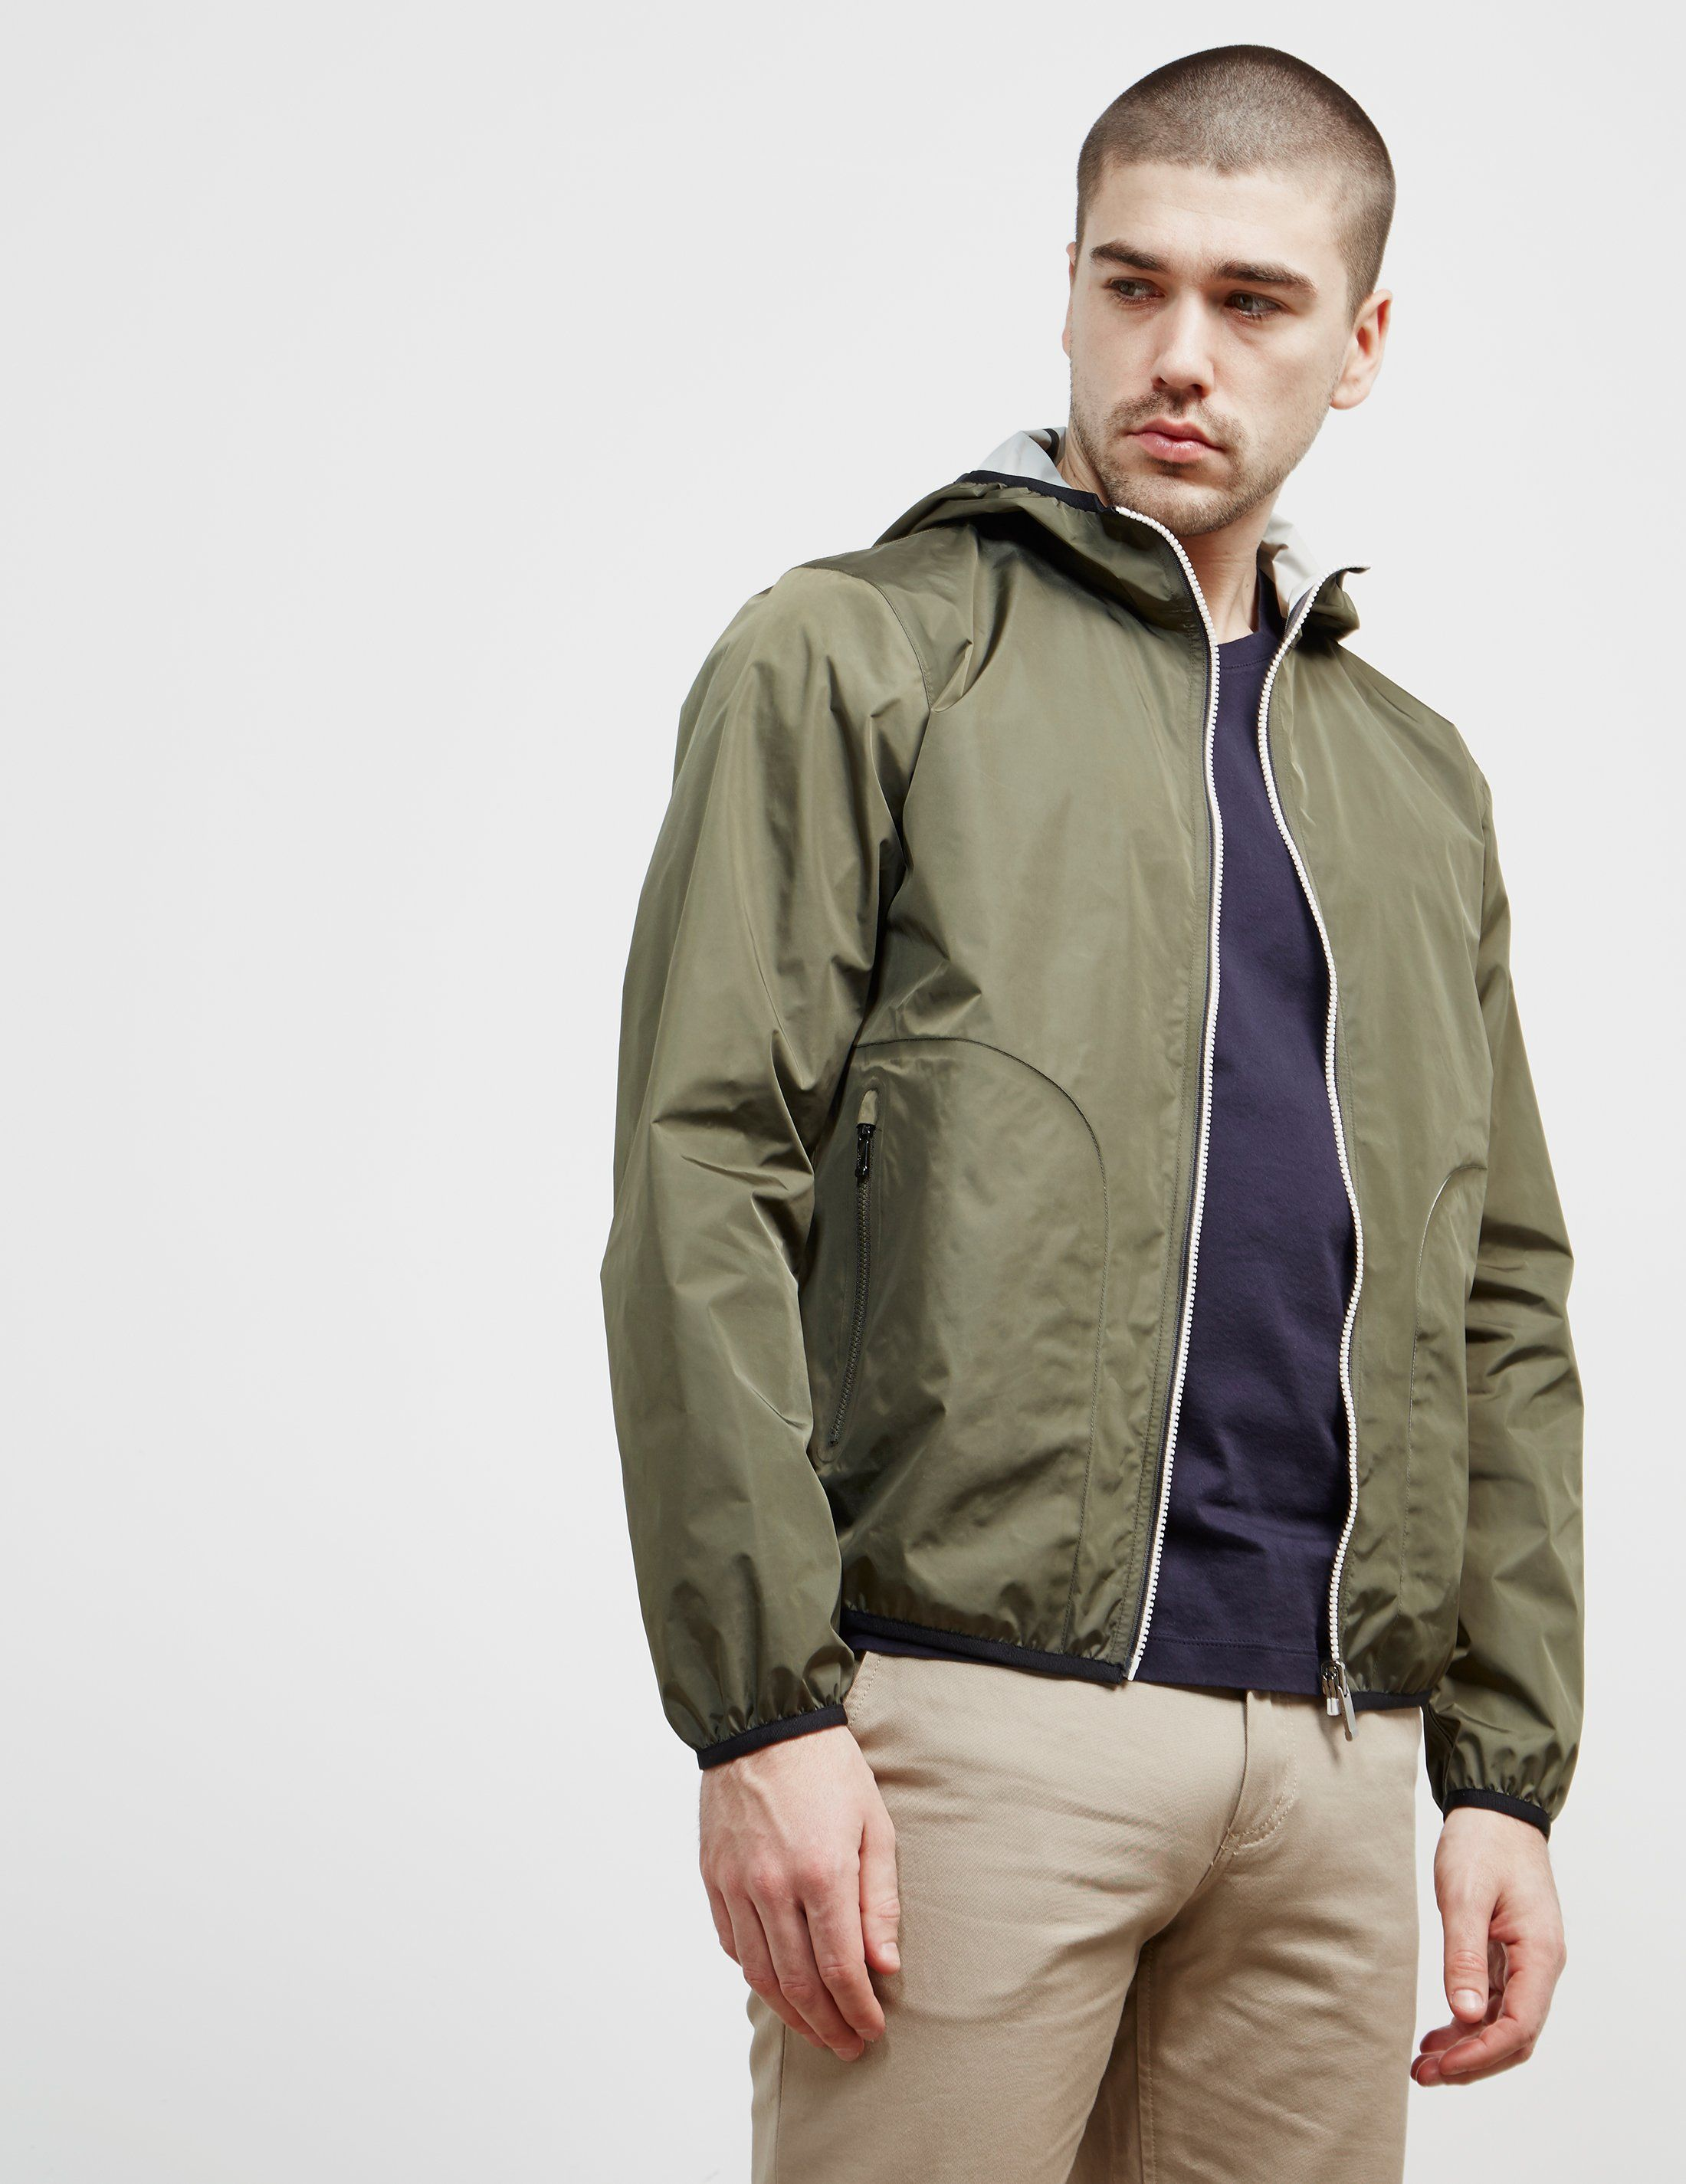 Z Zegna Block Lightweight Jacket - Online Exclusive